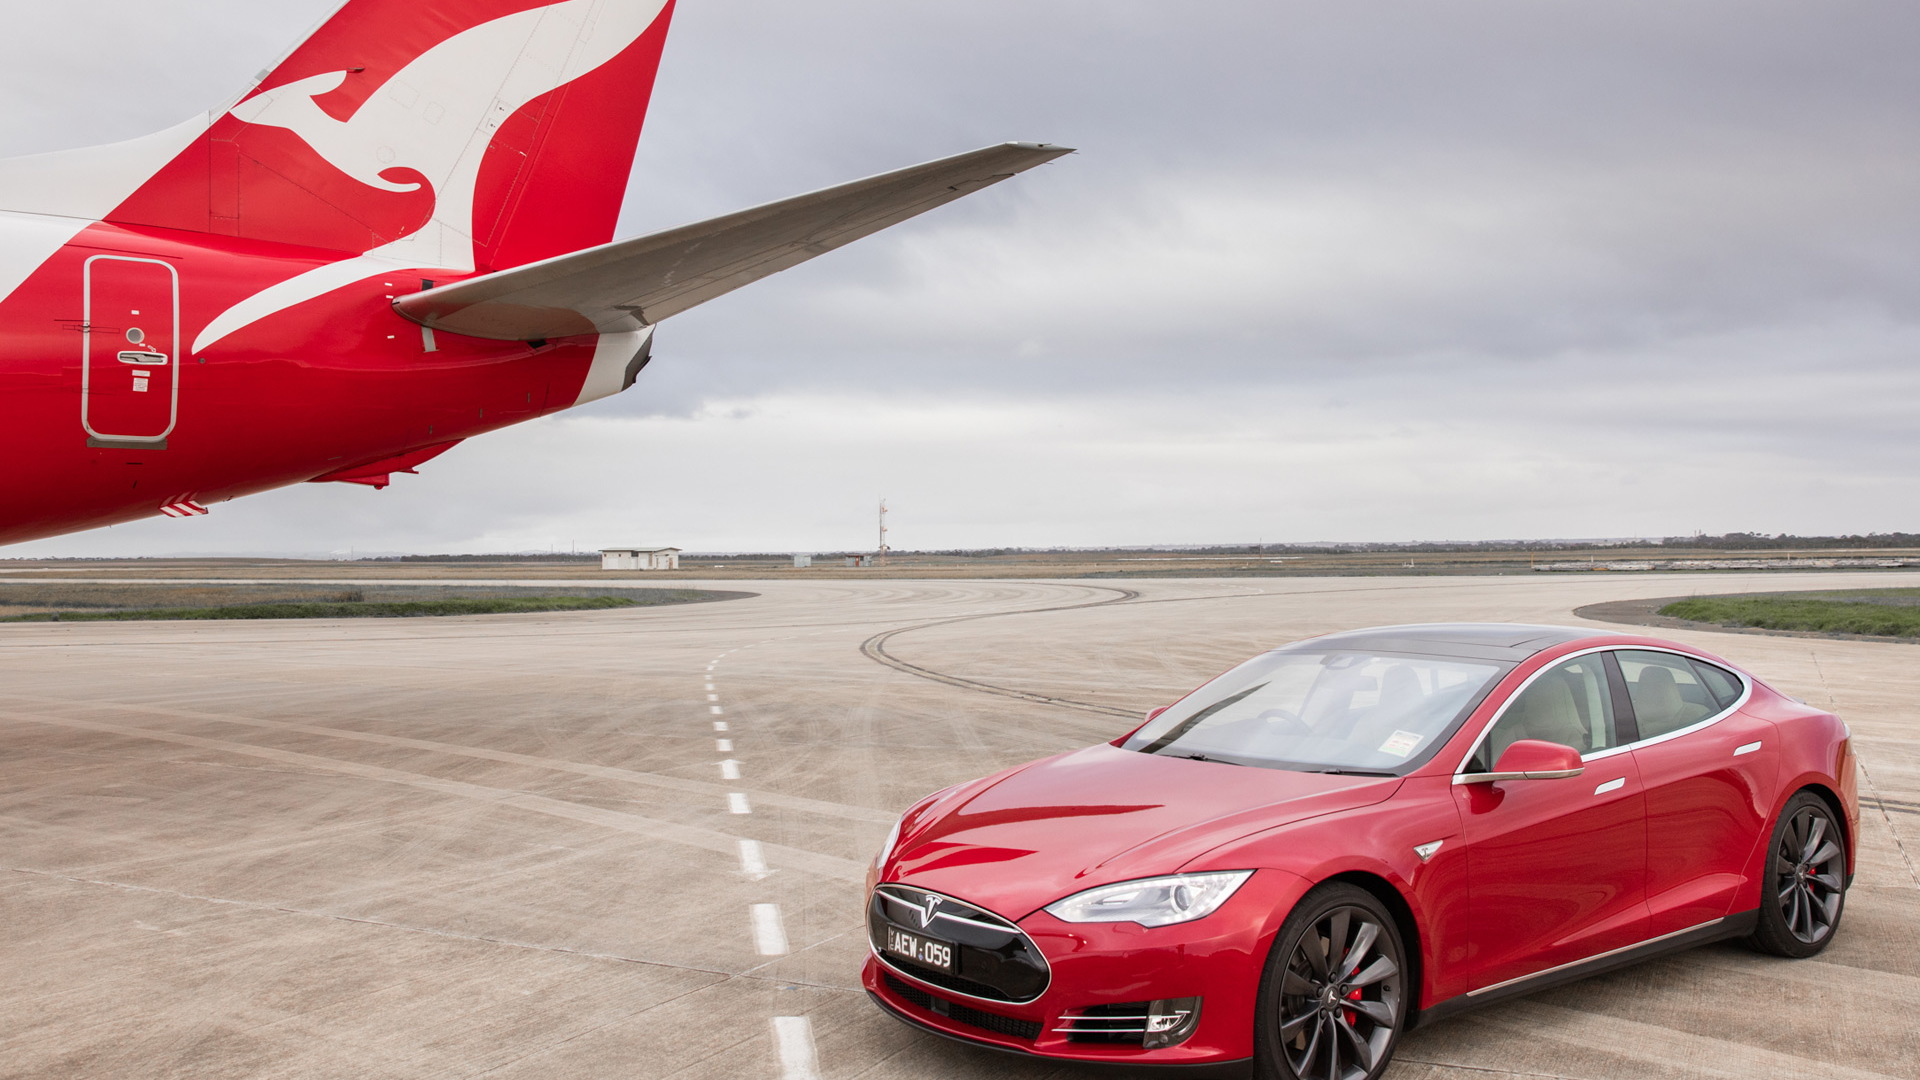 2016 Tesla Model S P90D and Boeing 737 drag race